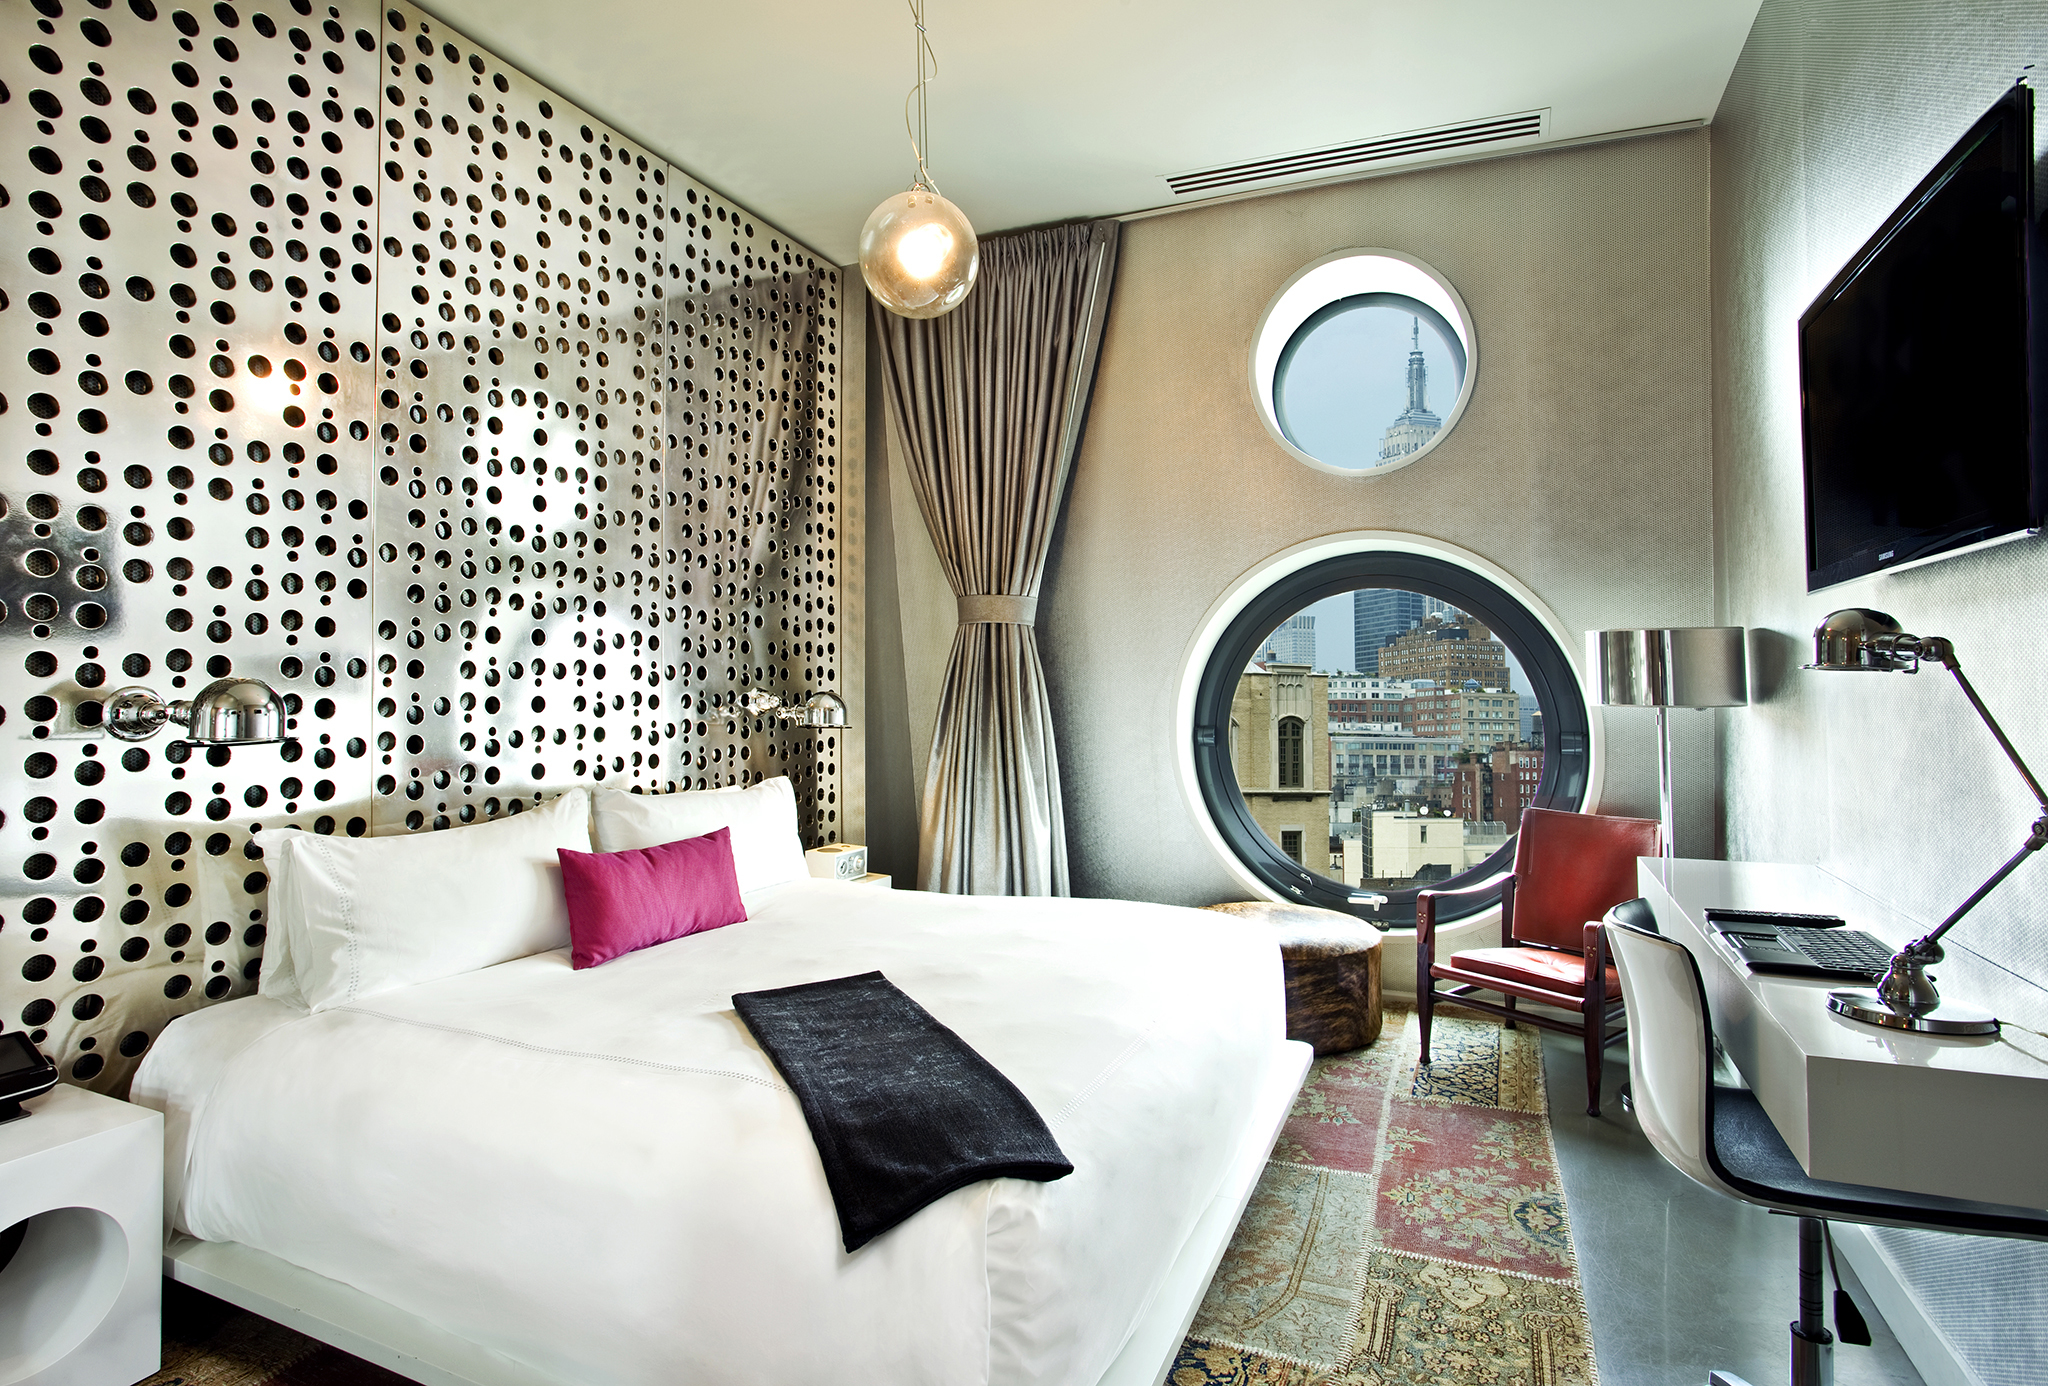 The best hotels in the Meatpacking District